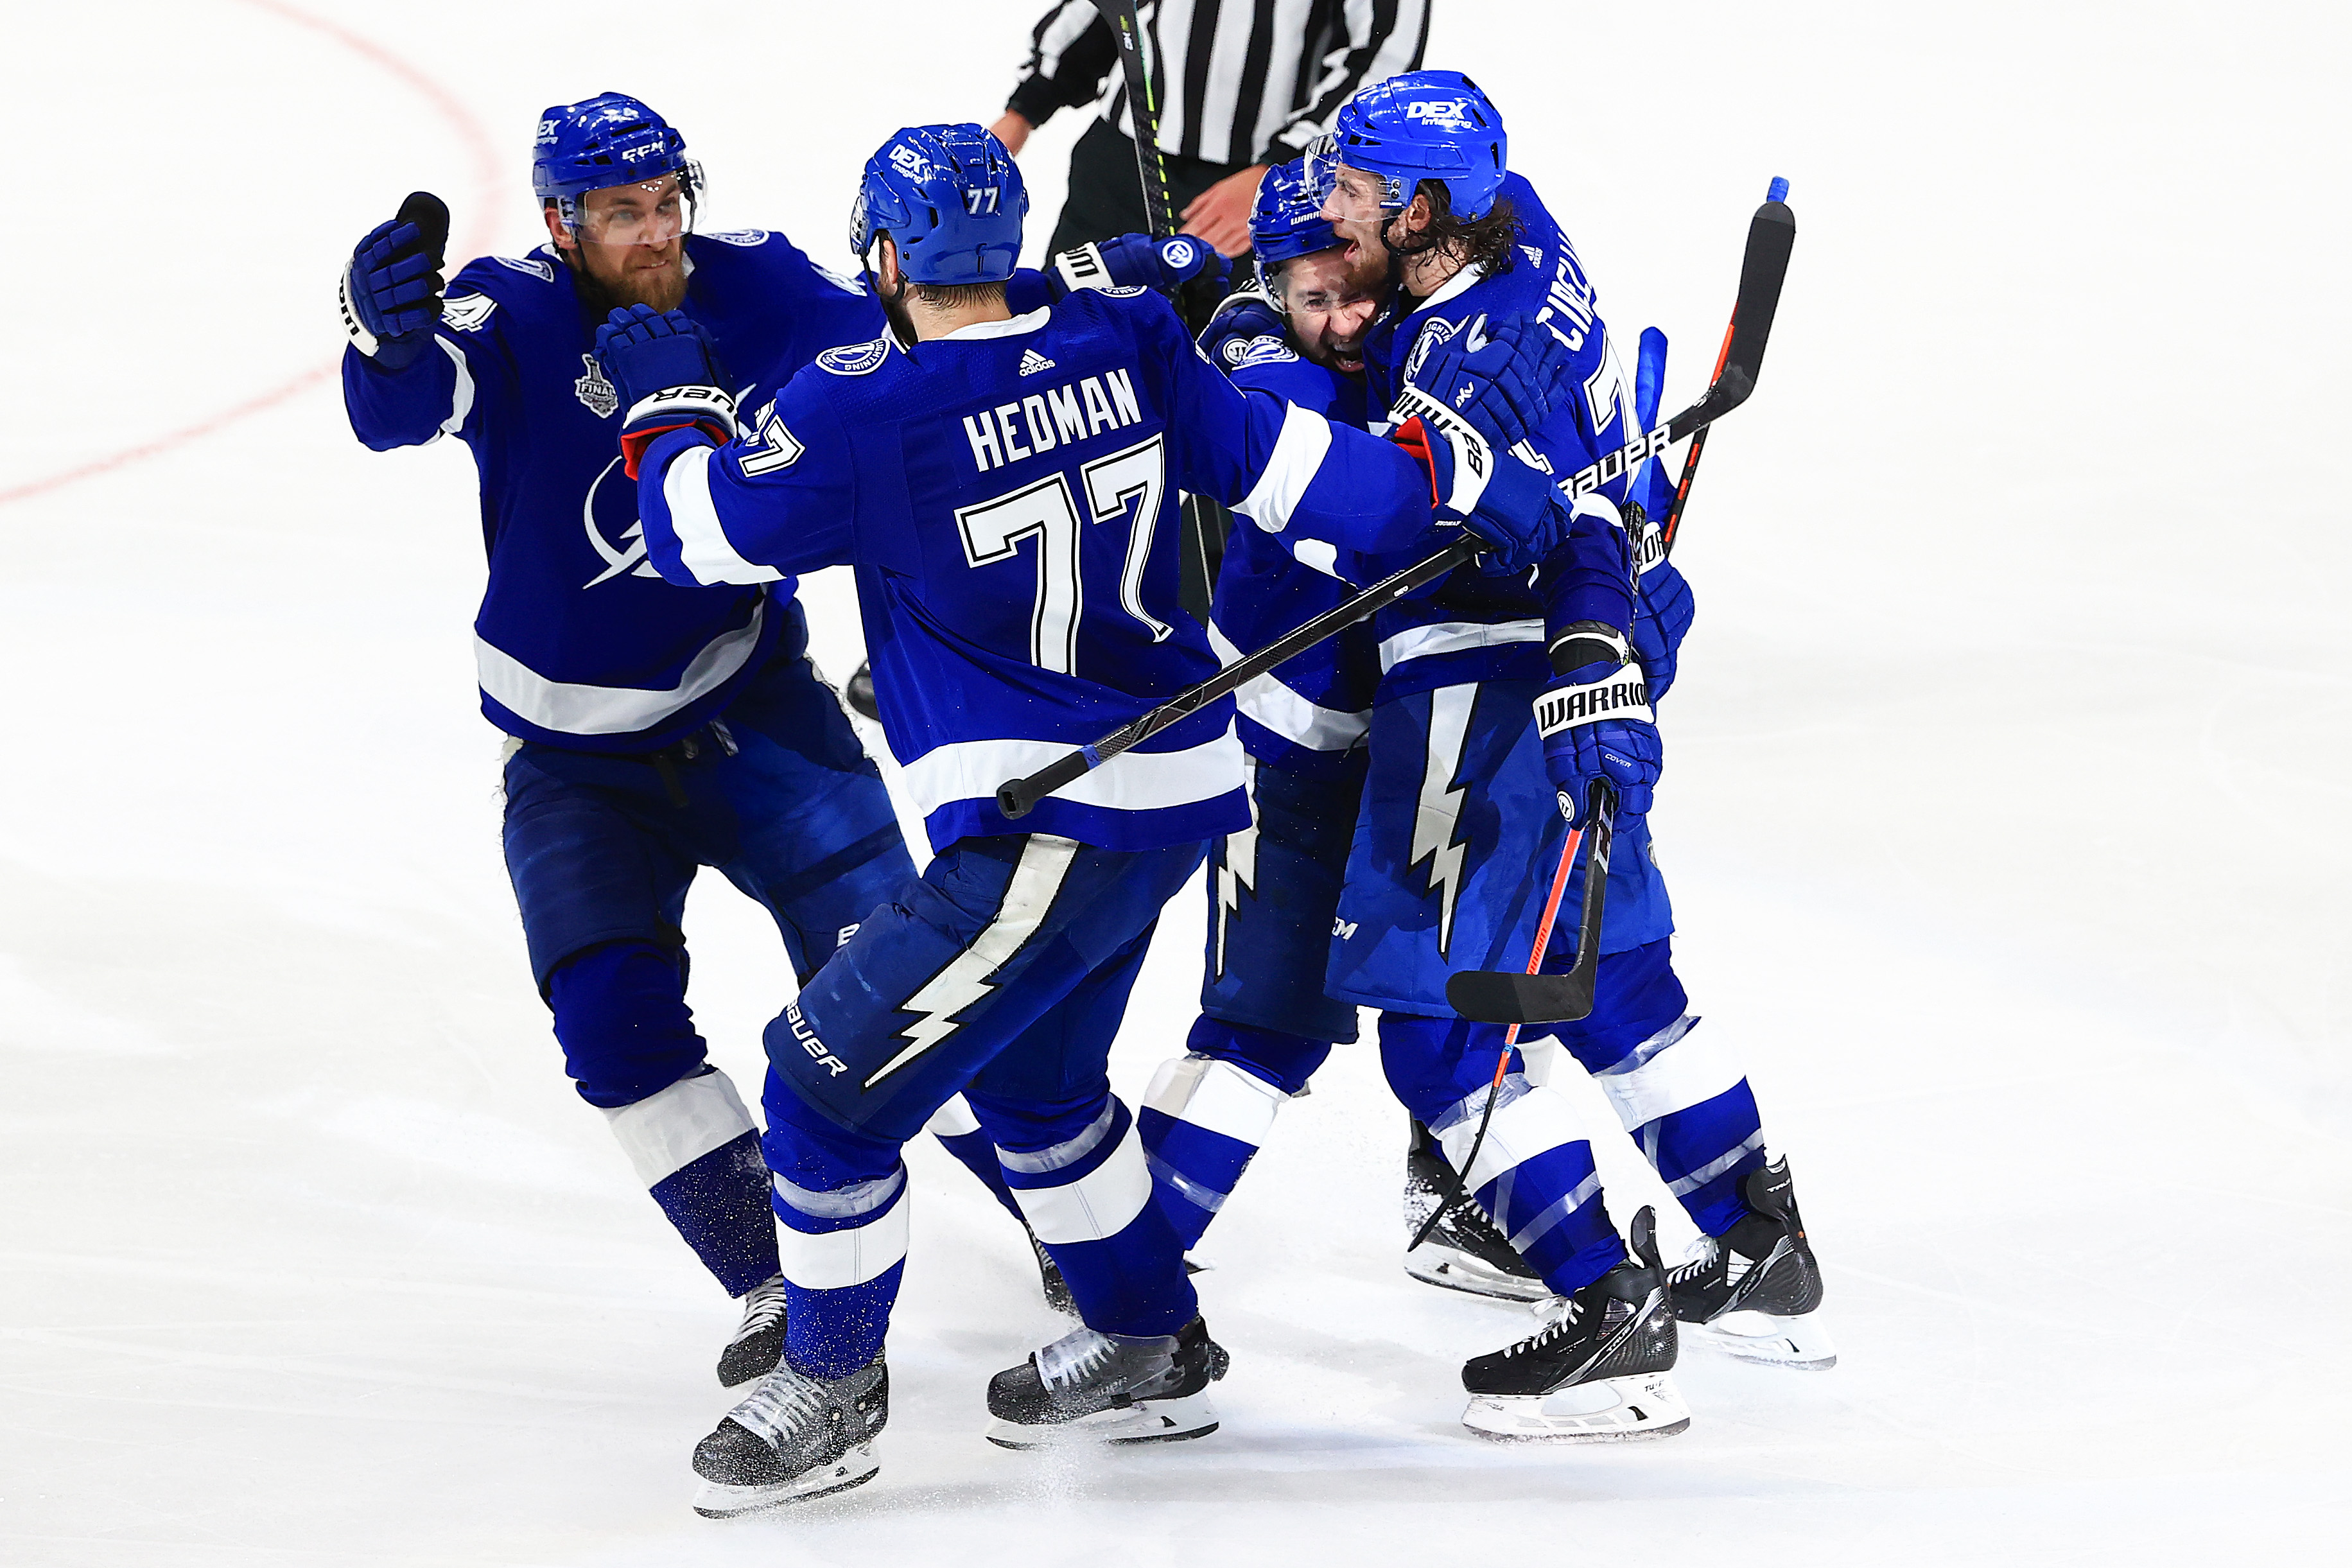 Anthony Cirelli #71 of the Tampa Bay Lightning celebrates with teammates Tyler Johnson #9, Victor Hedman #77, and Jan Rutta #44 after scoring against Carey Price #31 of the Montreal Canadiens during the second period in Game Two of the 2021 NHL Stanley Cup Final at Amalie Arena on June 30, 2021 in Tampa, Florida.